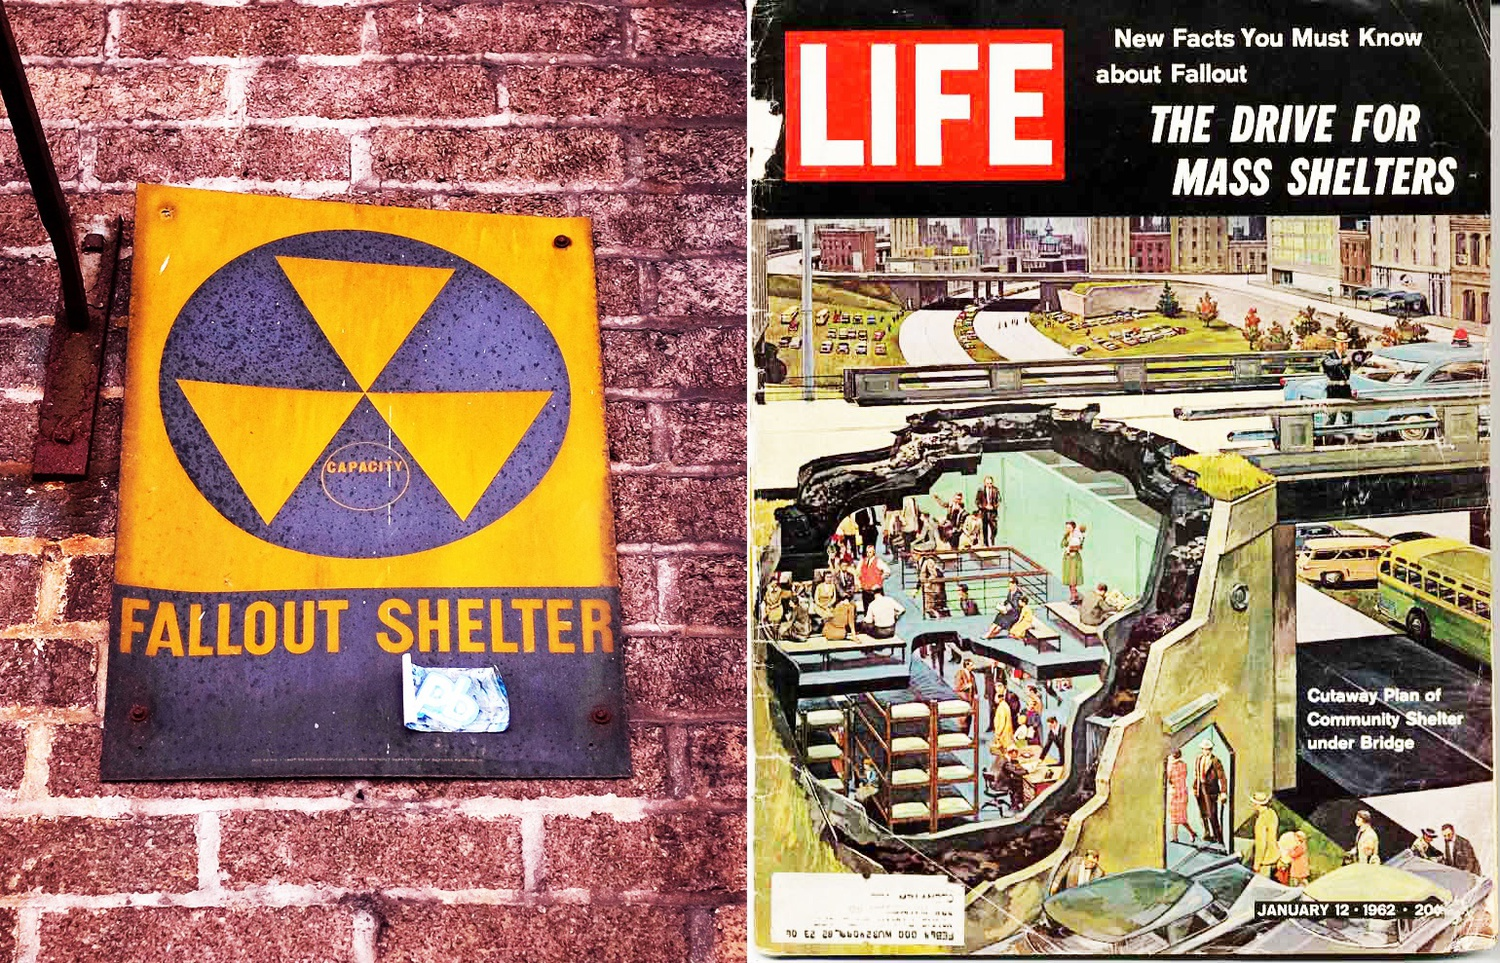 Fallout Shelters: Why some New Yorkers never planned to evacuate after a nuclear disaster